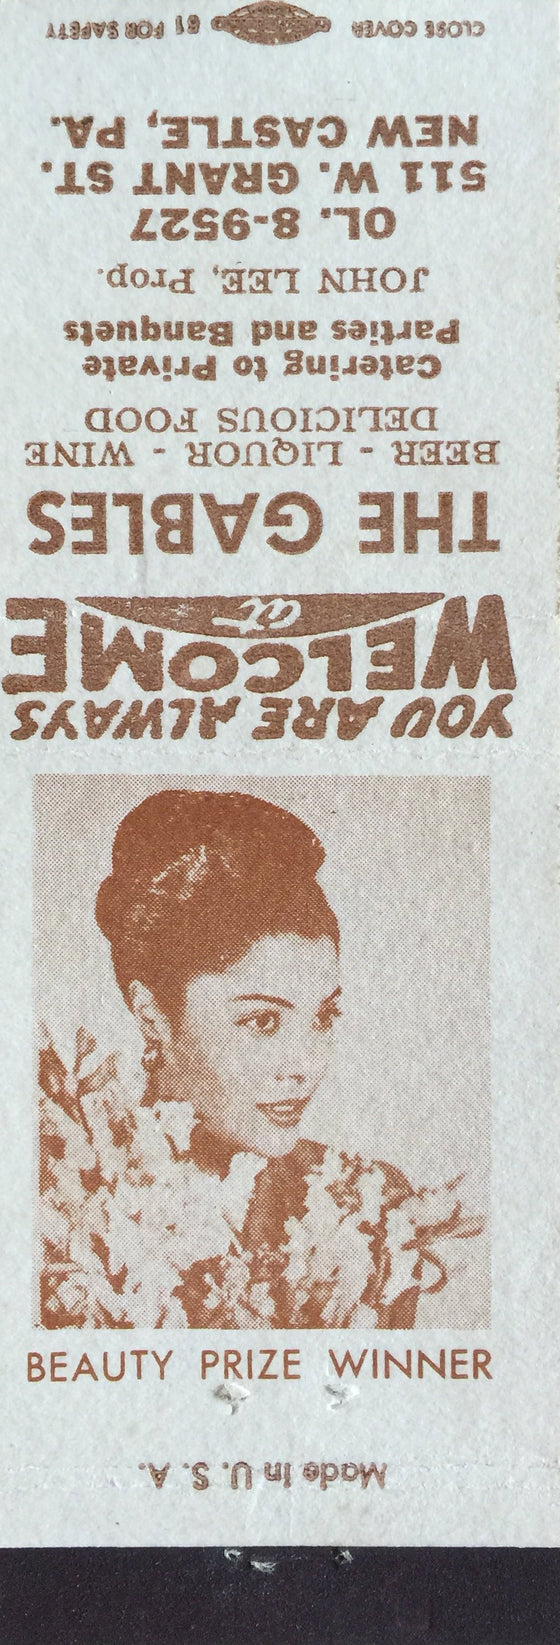 """Beauty Prize Winner"" Matchbook Cover"